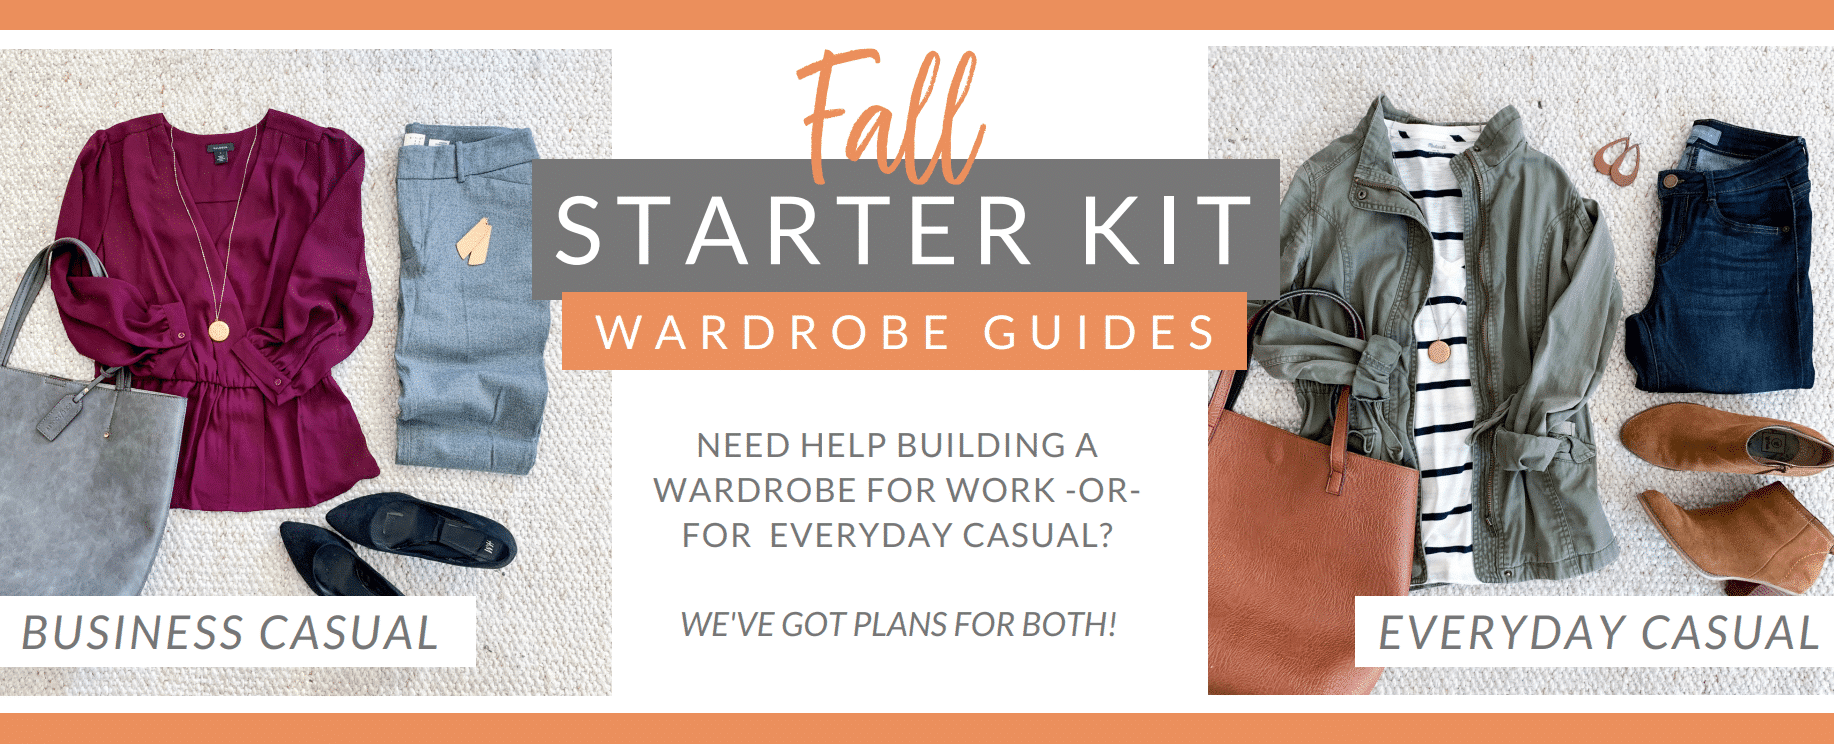 Starter Kit Wardrobe Guides Casual and Business Casual